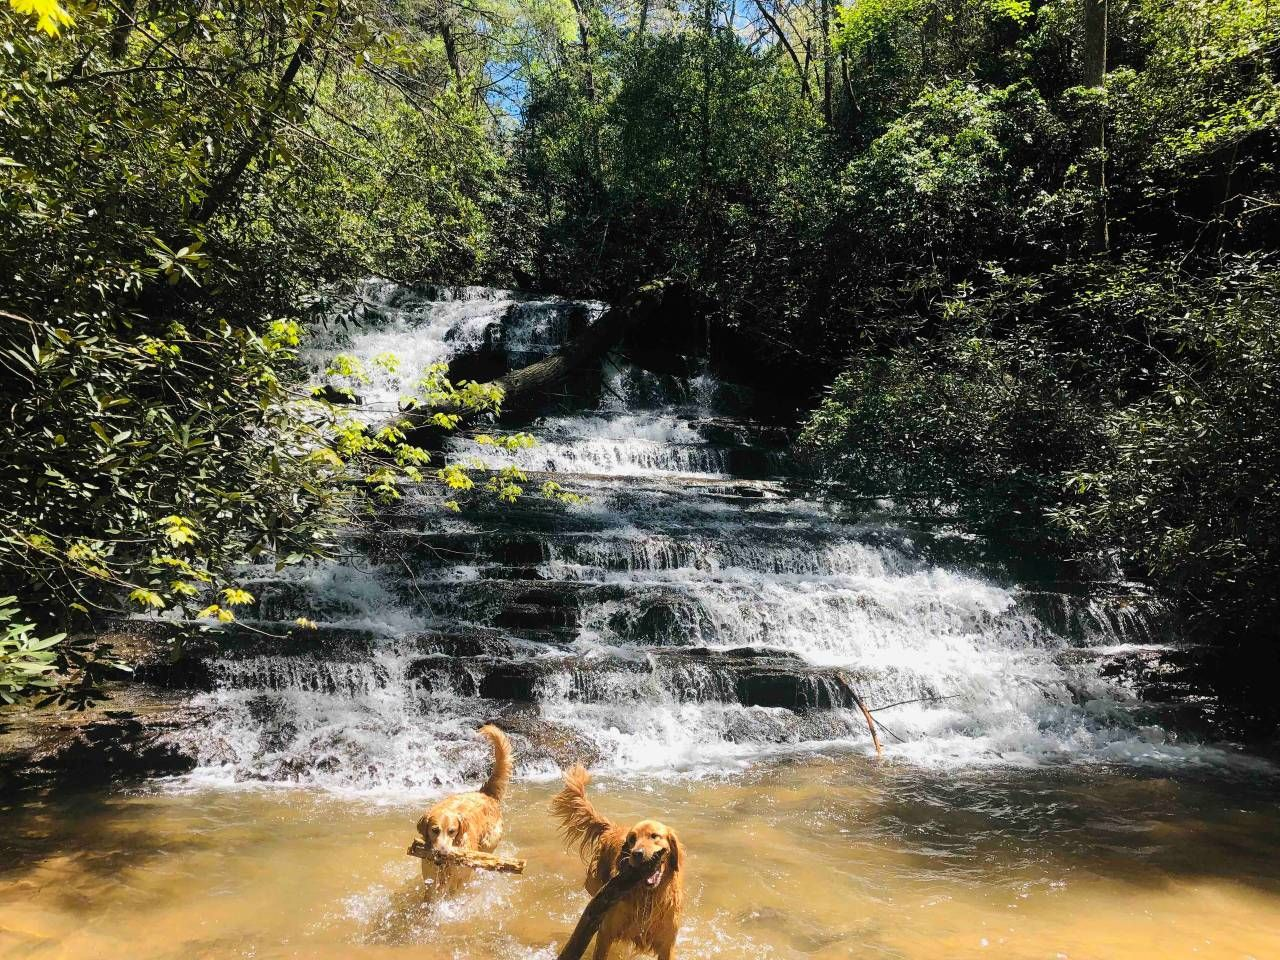 Waterfall Cabin Cabins For Rent In Oconee County Oconee County Waterfall Oconee